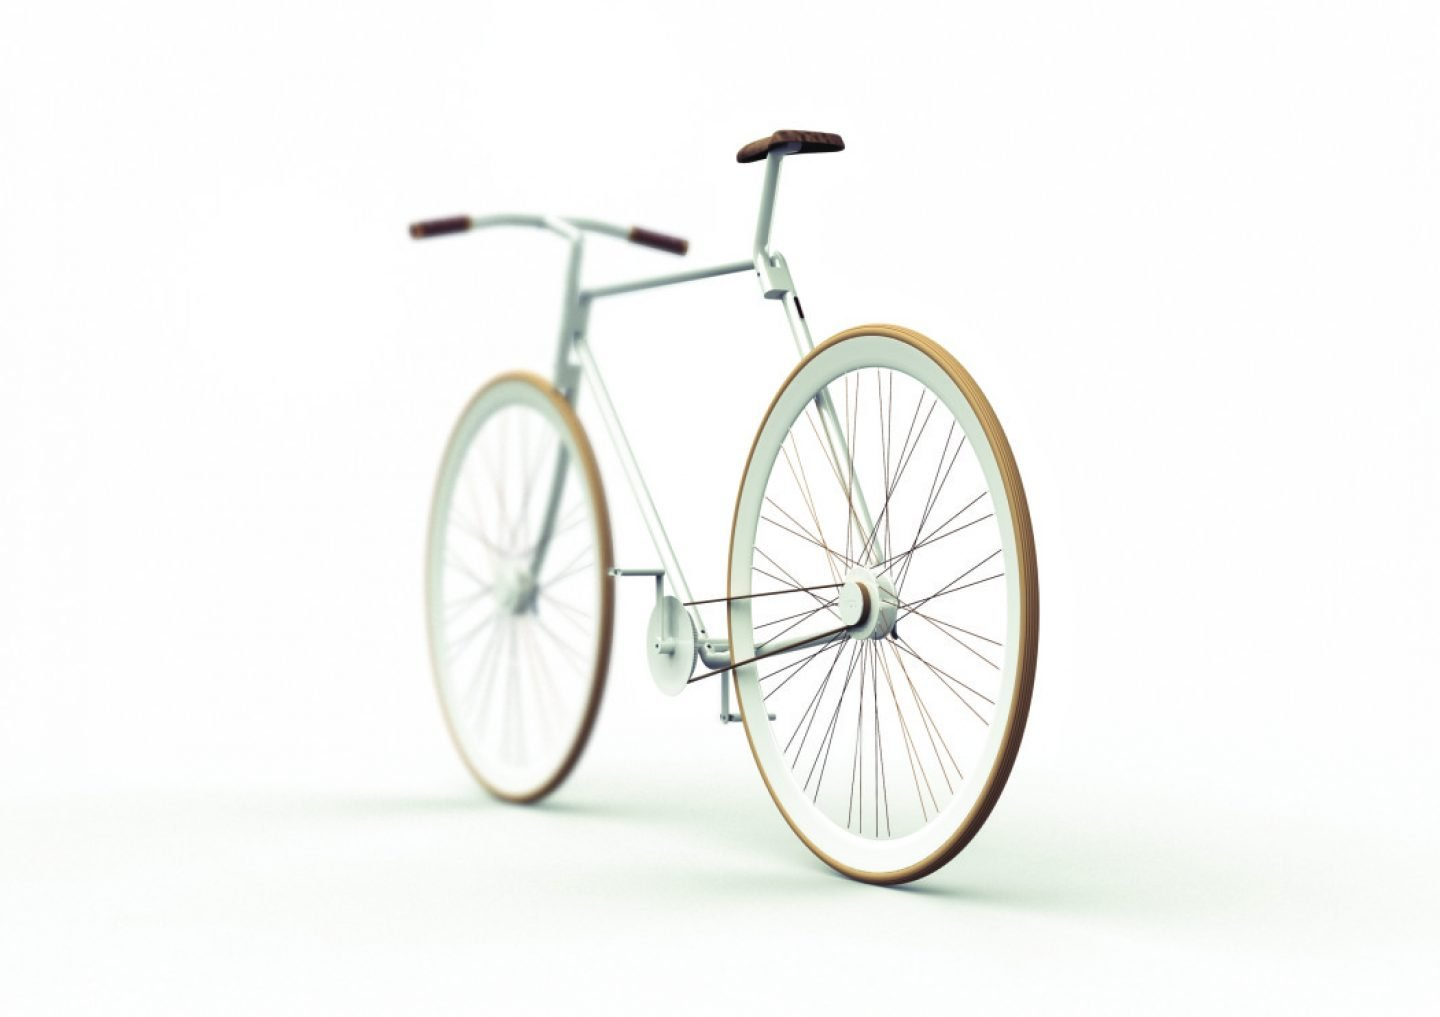 kit-bike_design_006